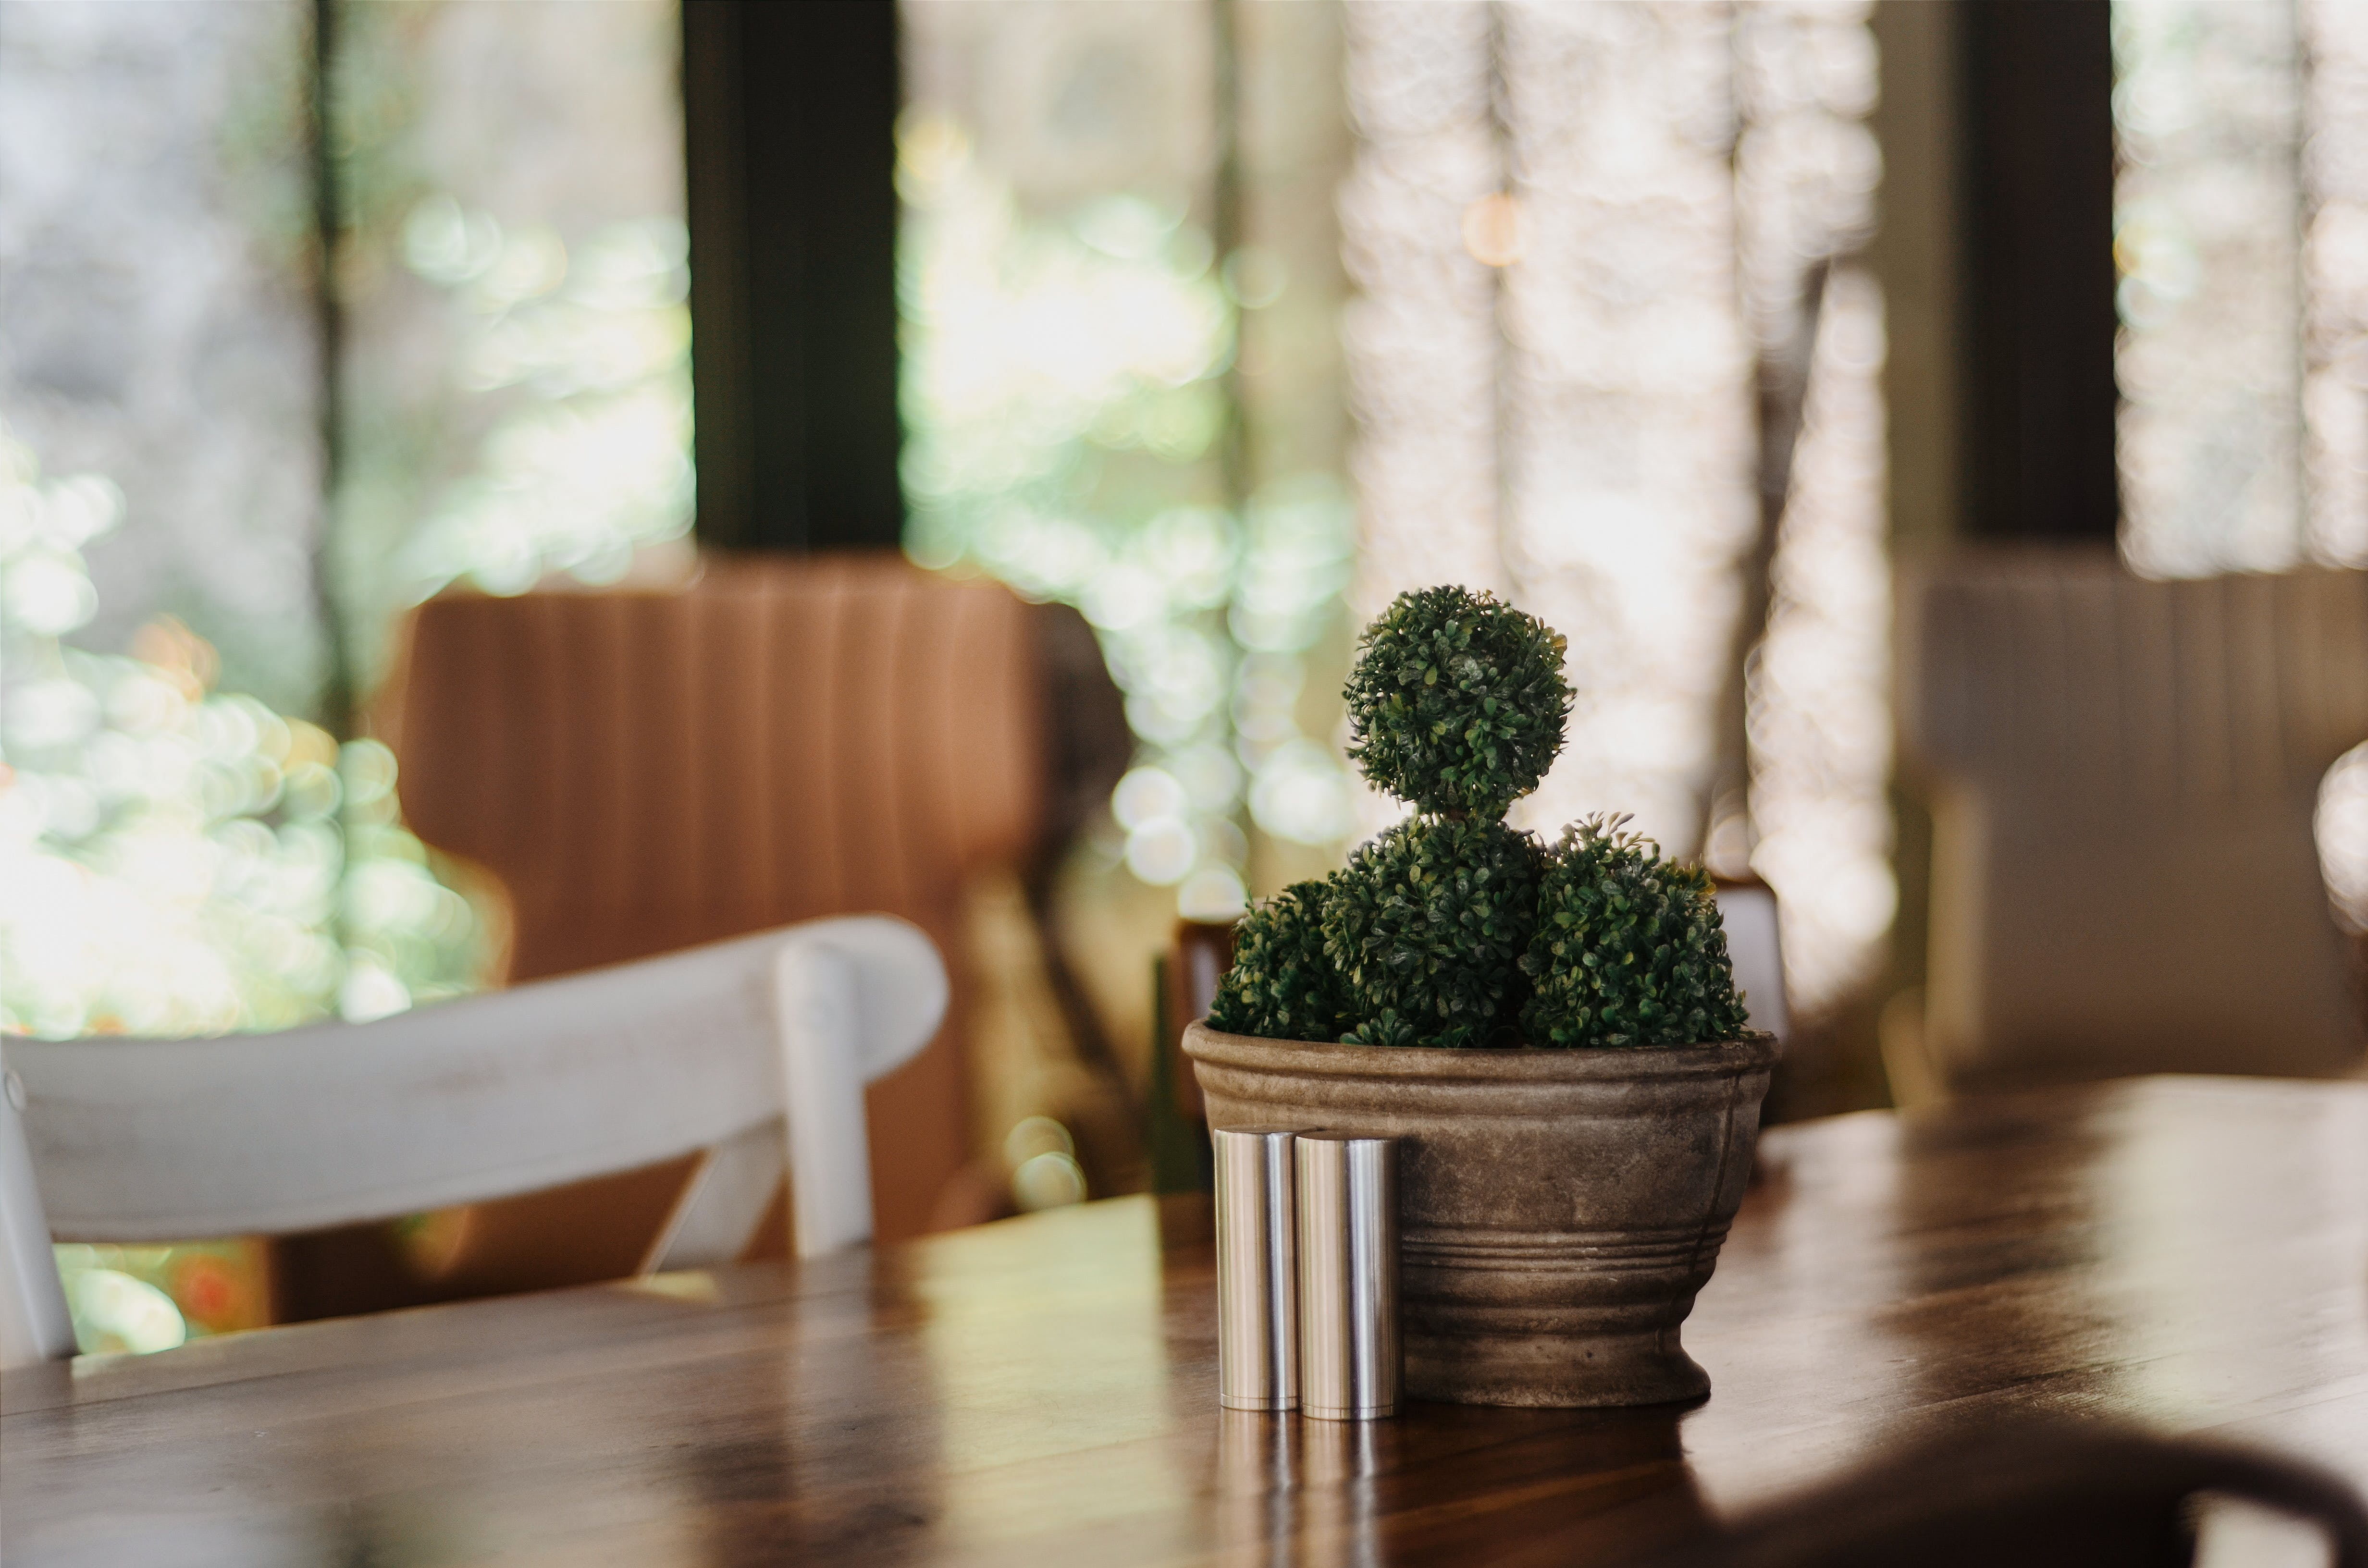 Green Cactus Plant on Table